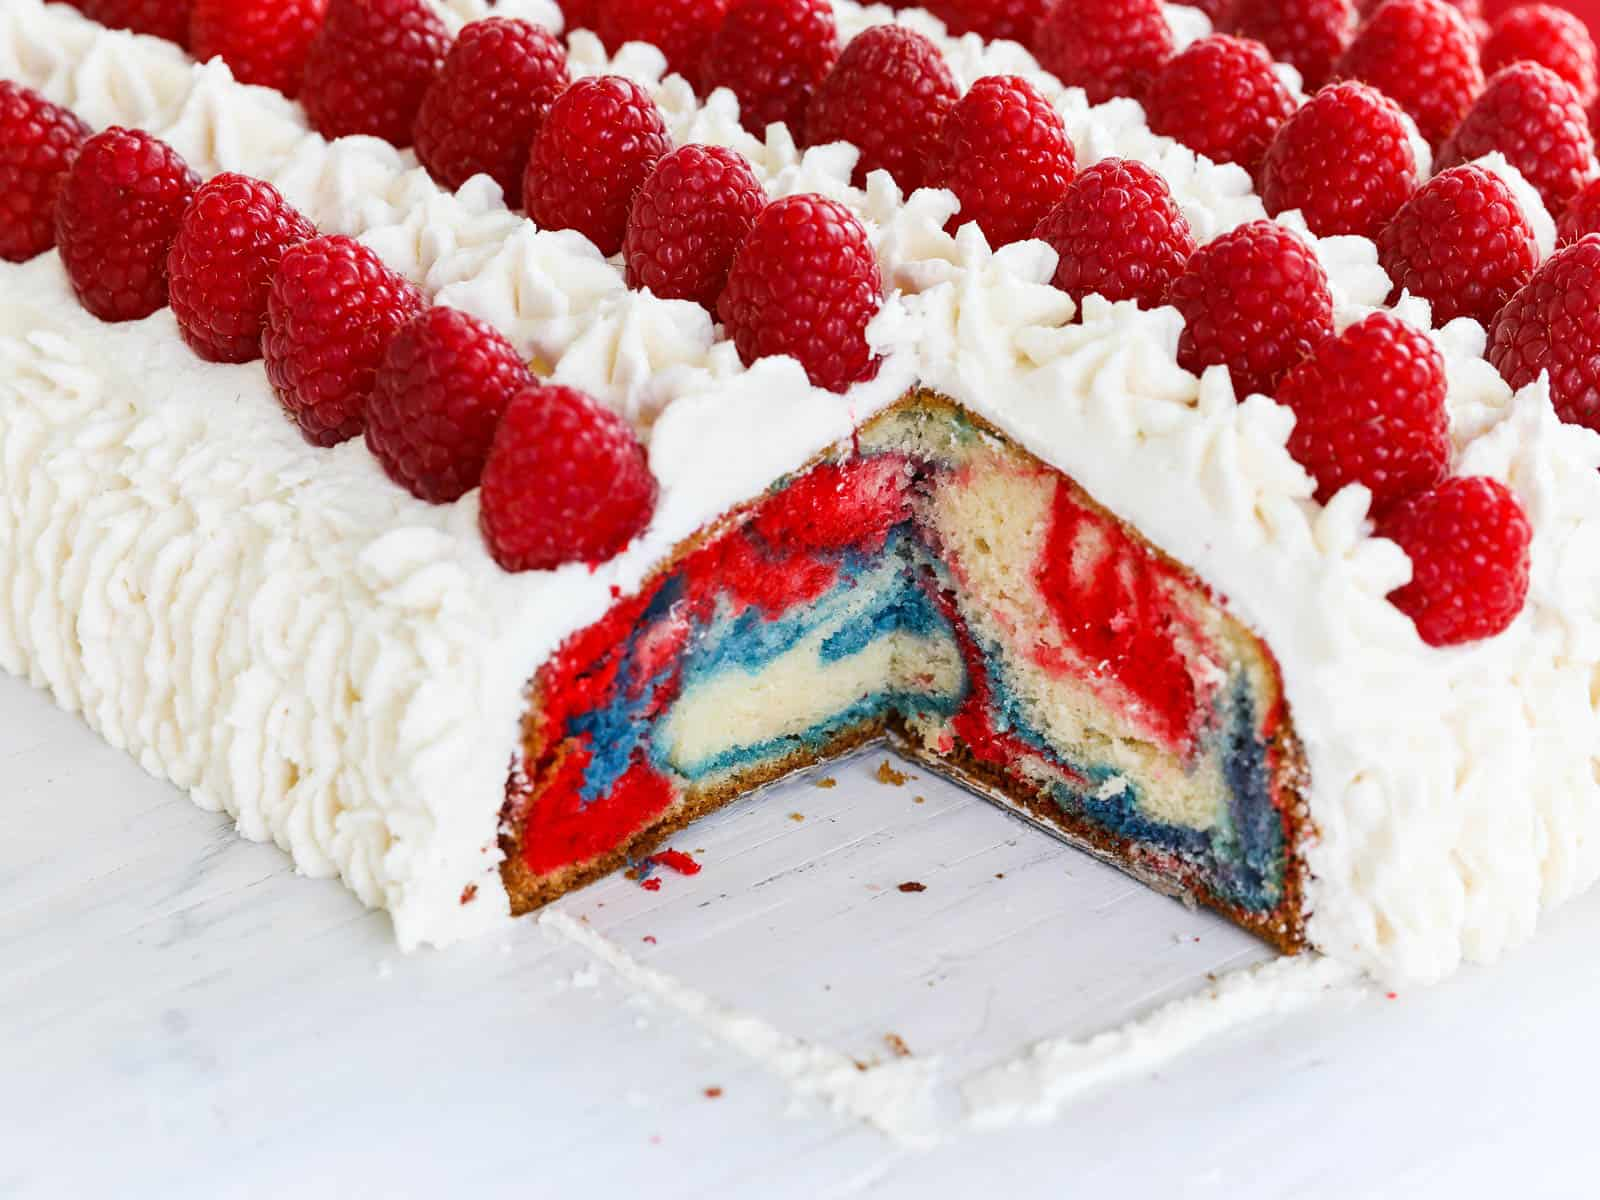 Looking at the corner of a sheet cake sliced out, with red white and blue marbled cake.